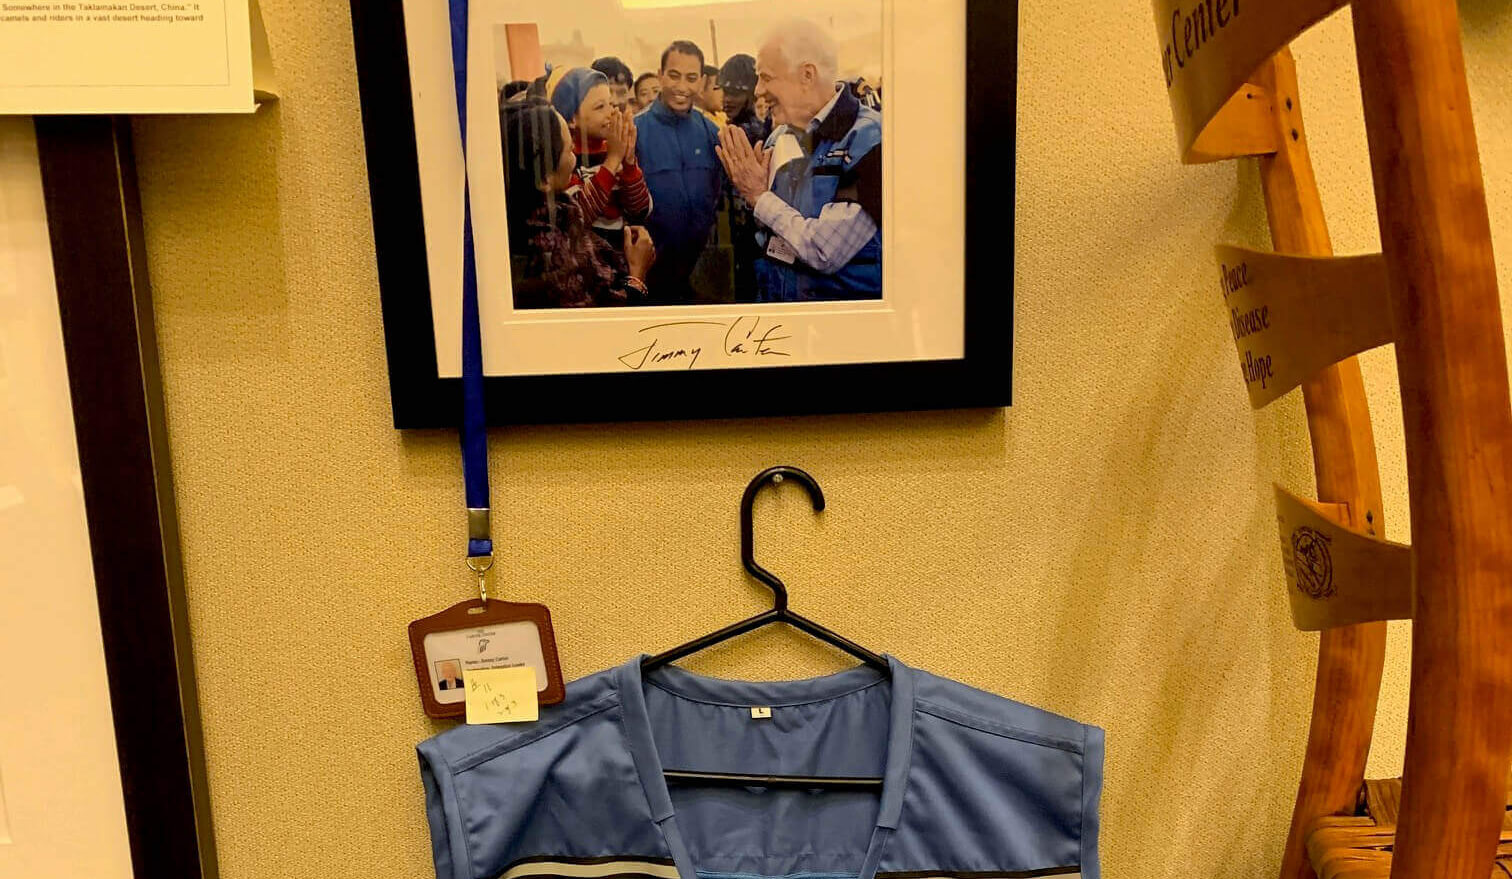 Jimmy Carter's Nepal vest auctioned for $10,000